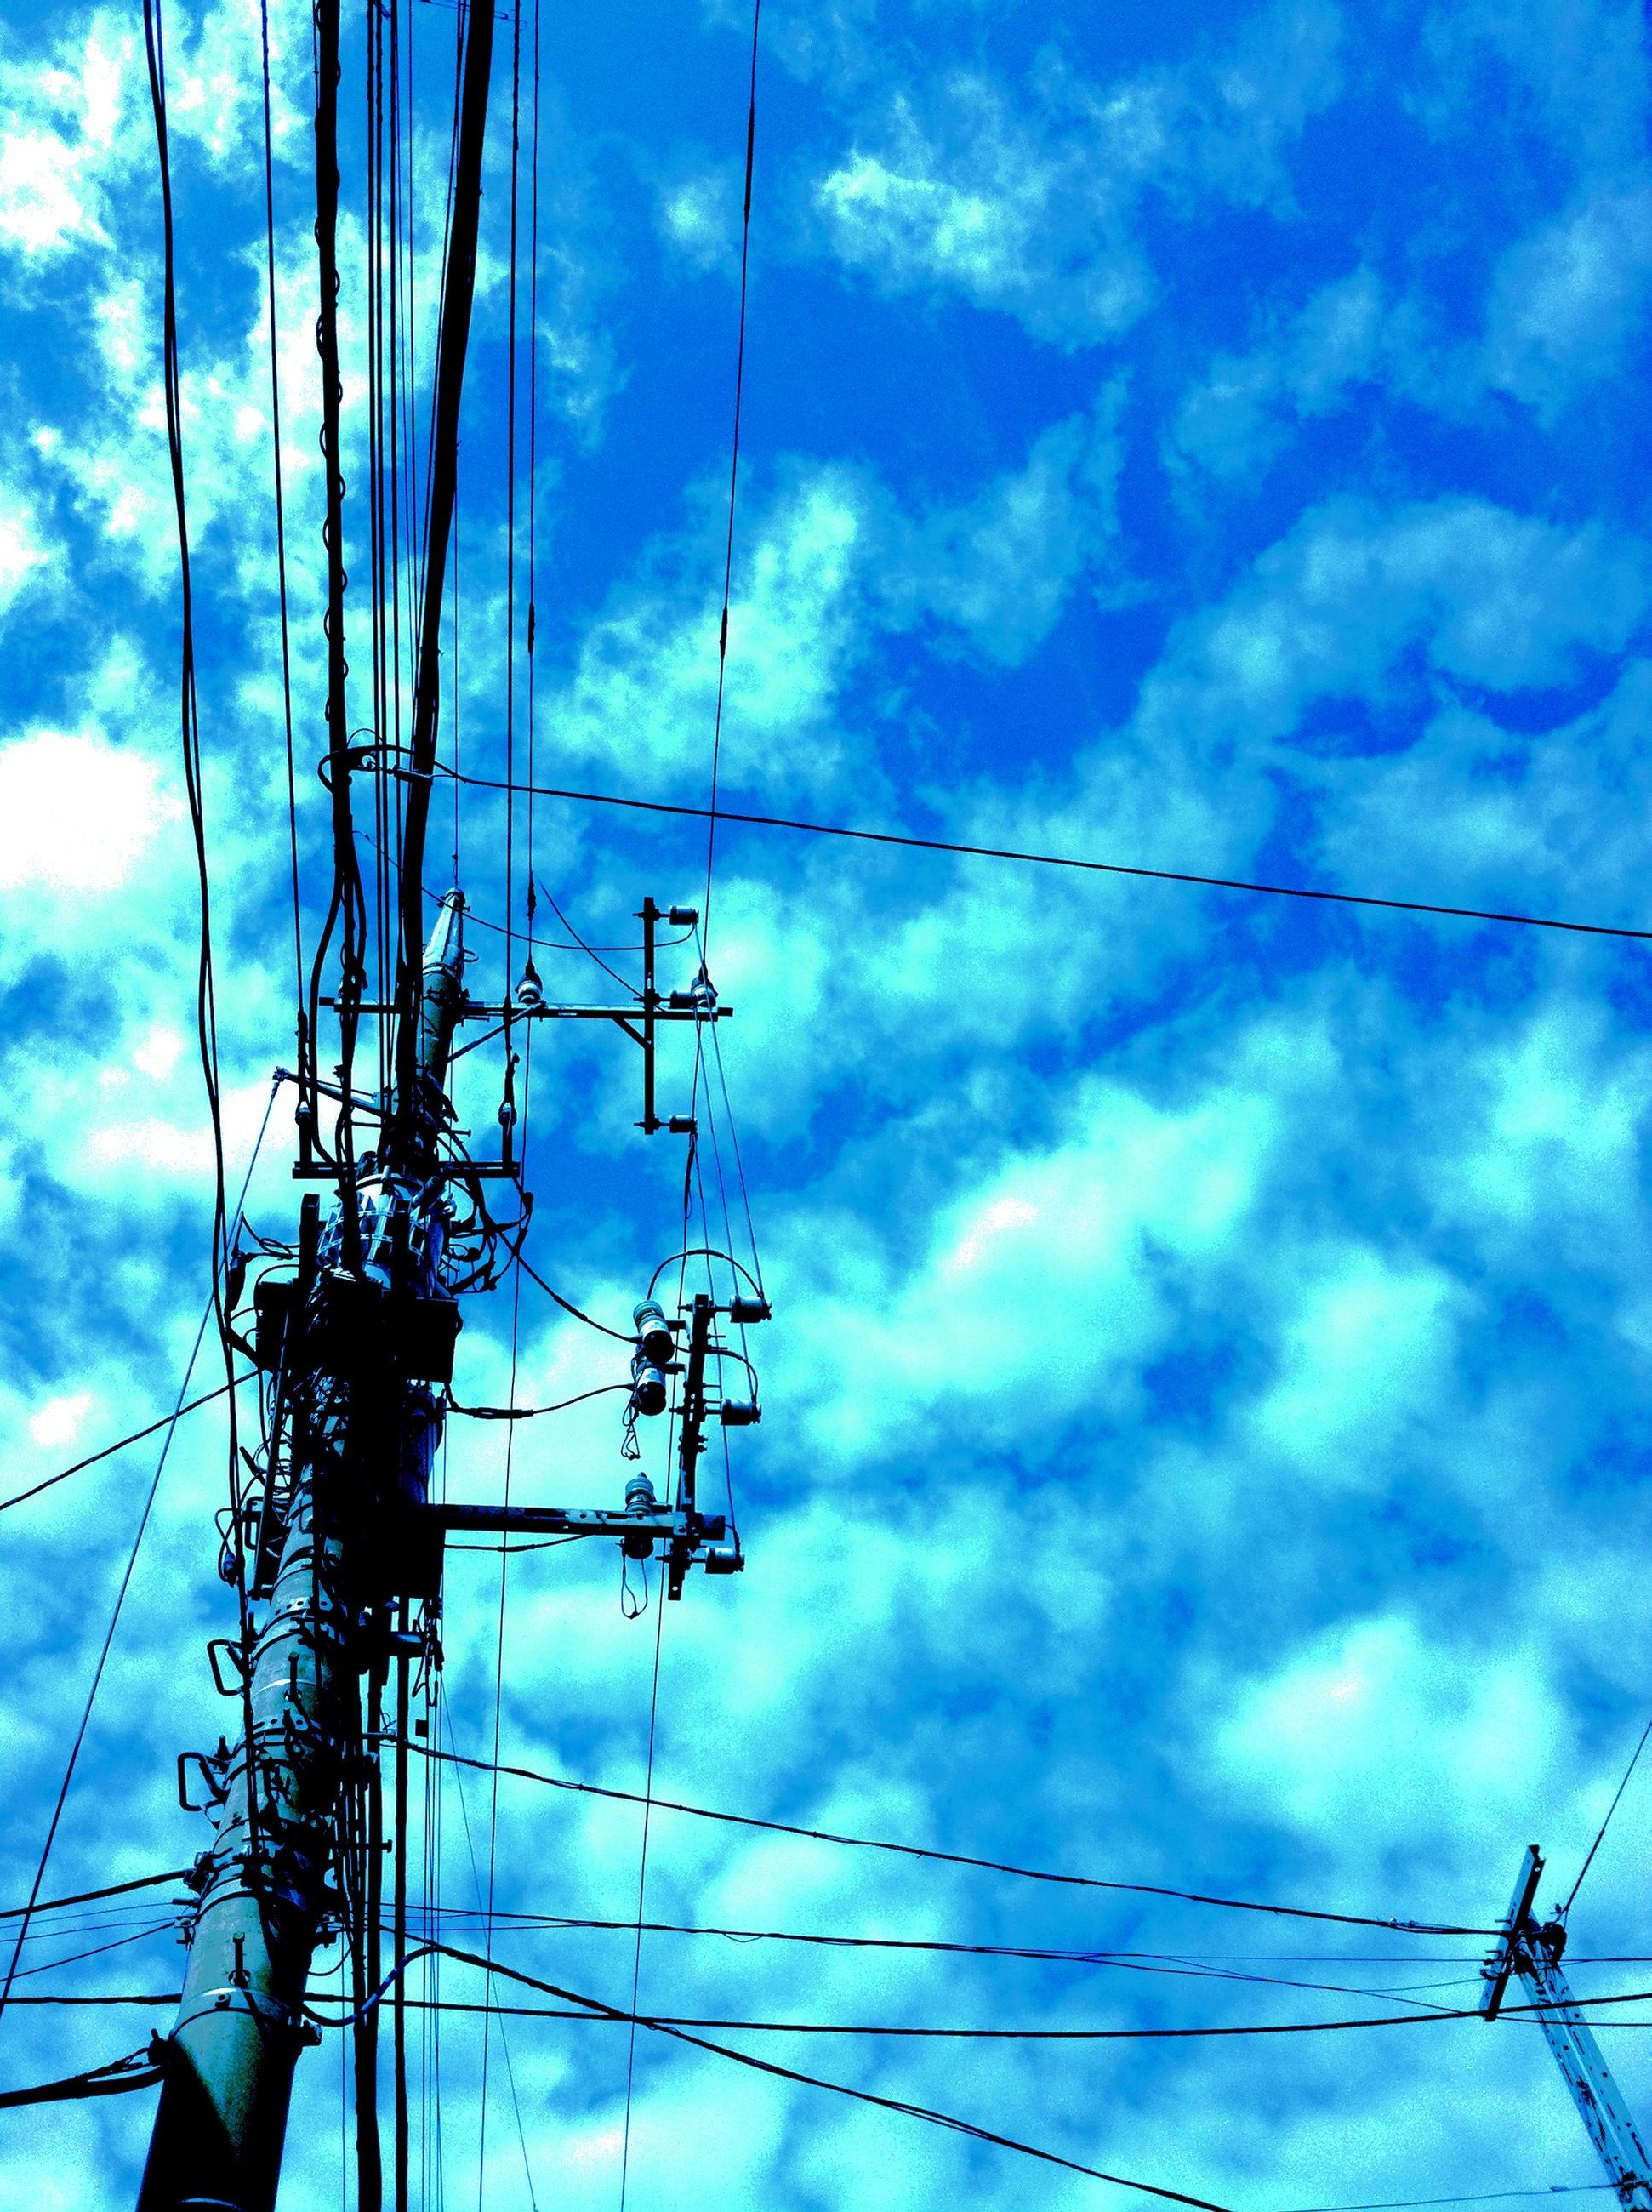 power line, electricity pylon, electricity, power supply, low angle view, cable, connection, fuel and power generation, sky, technology, cloud - sky, cloudy, cloud, complexity, blue, power cable, no people, day, outdoors, electricity tower